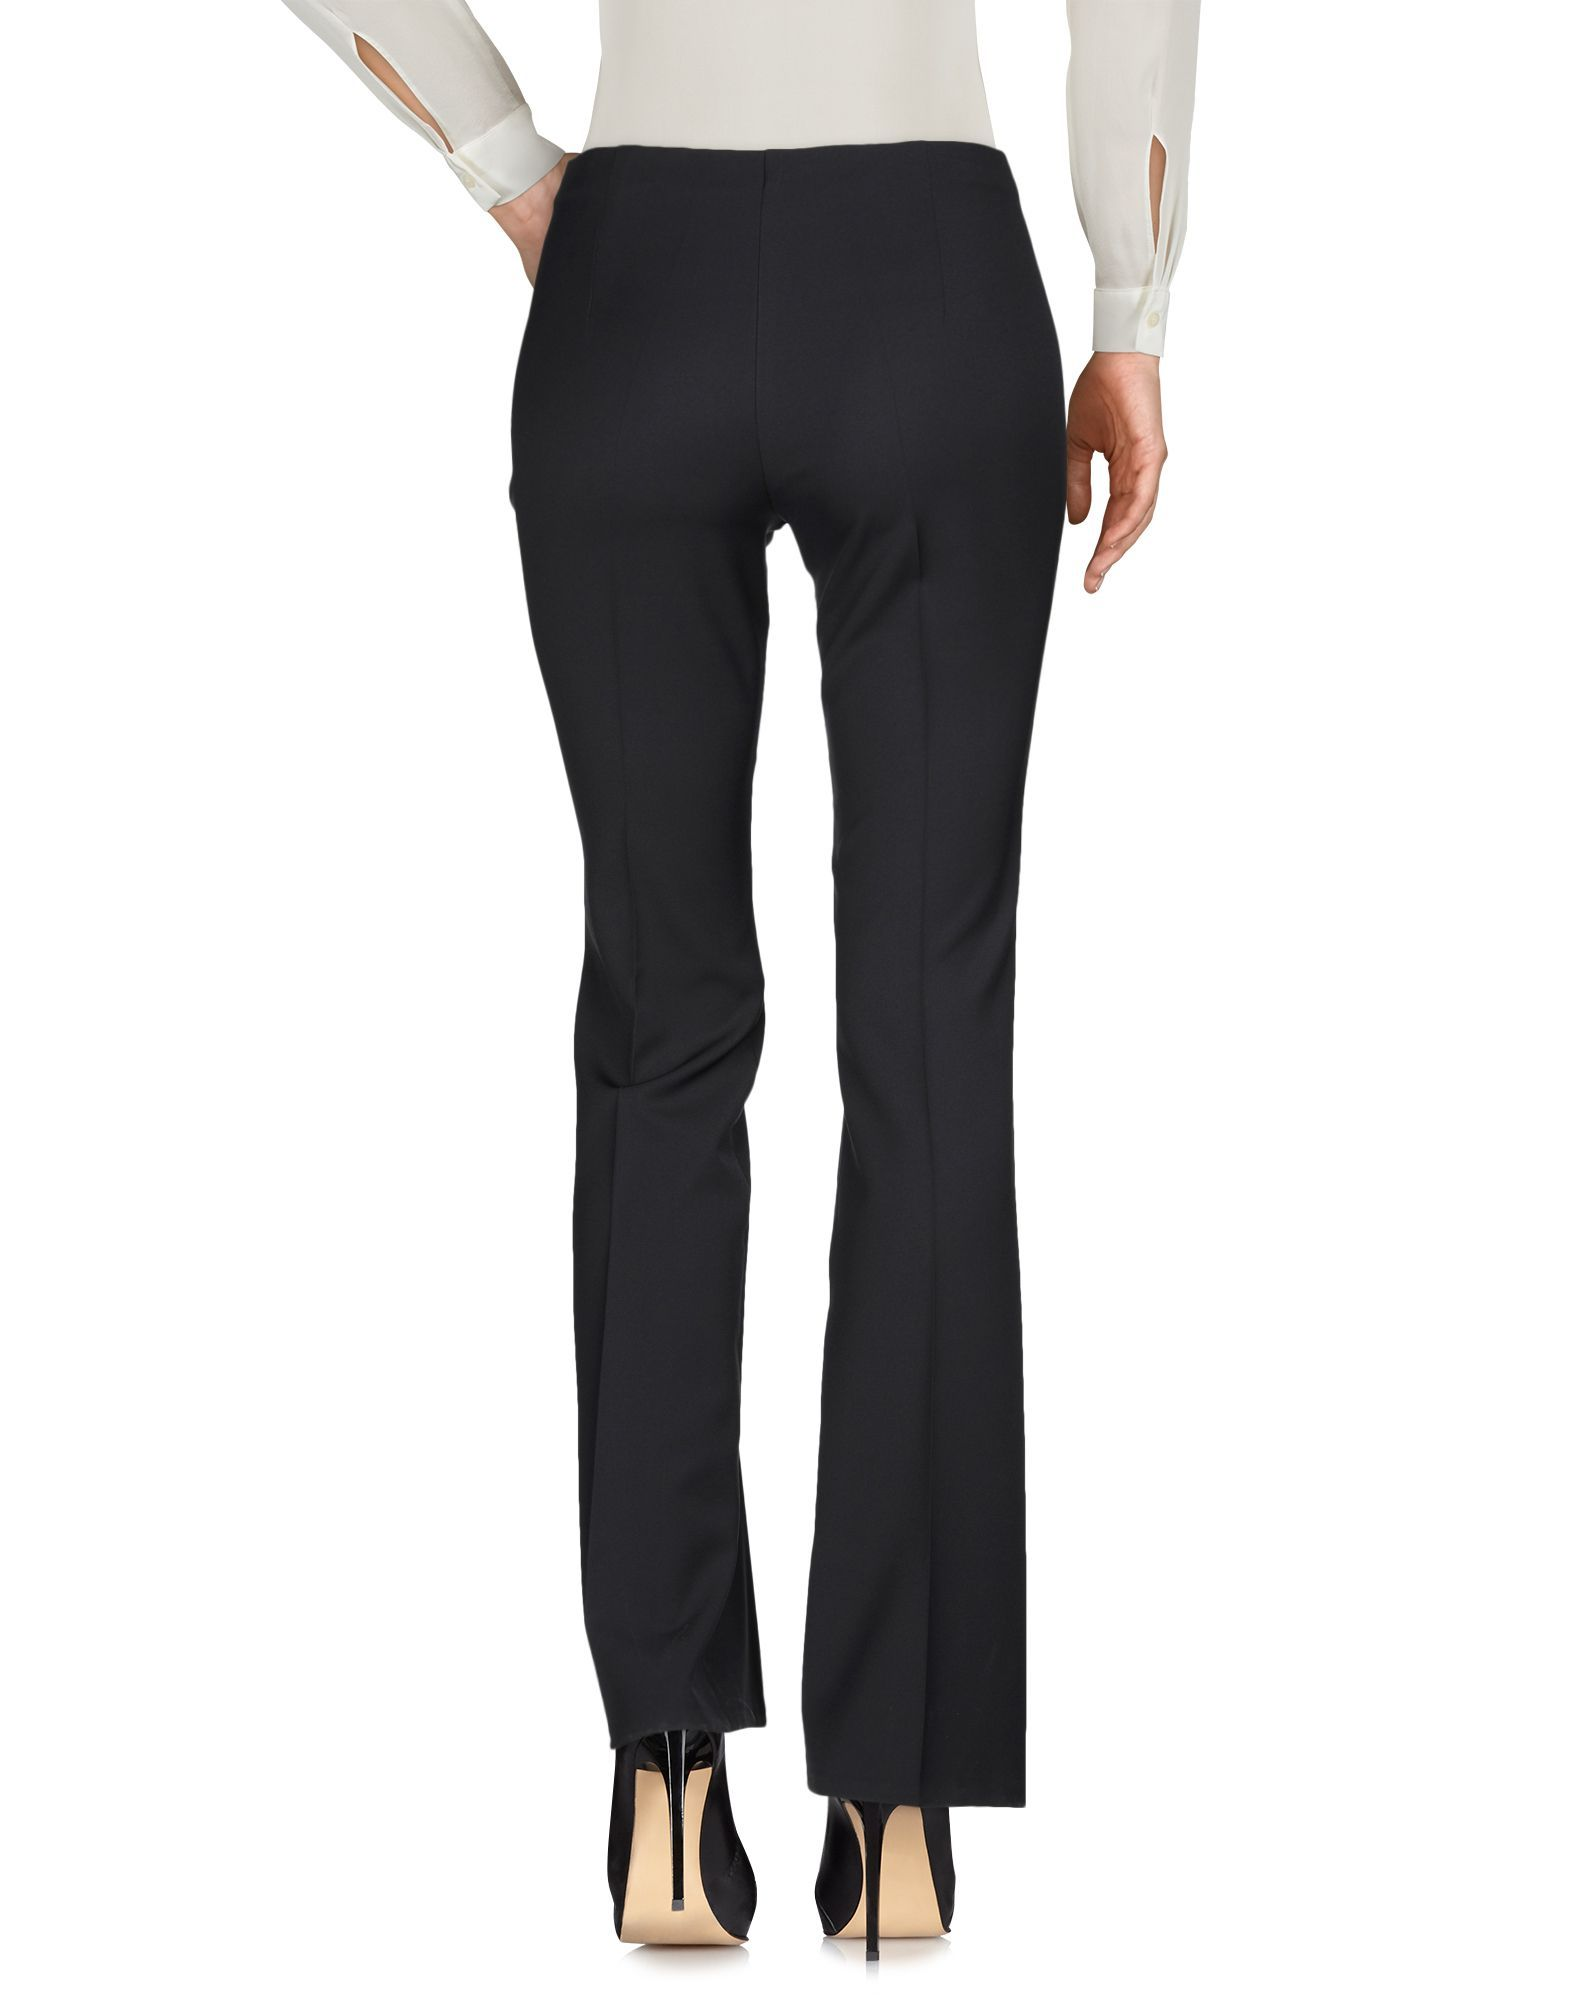 Trousers Pois Black Women's Polyester